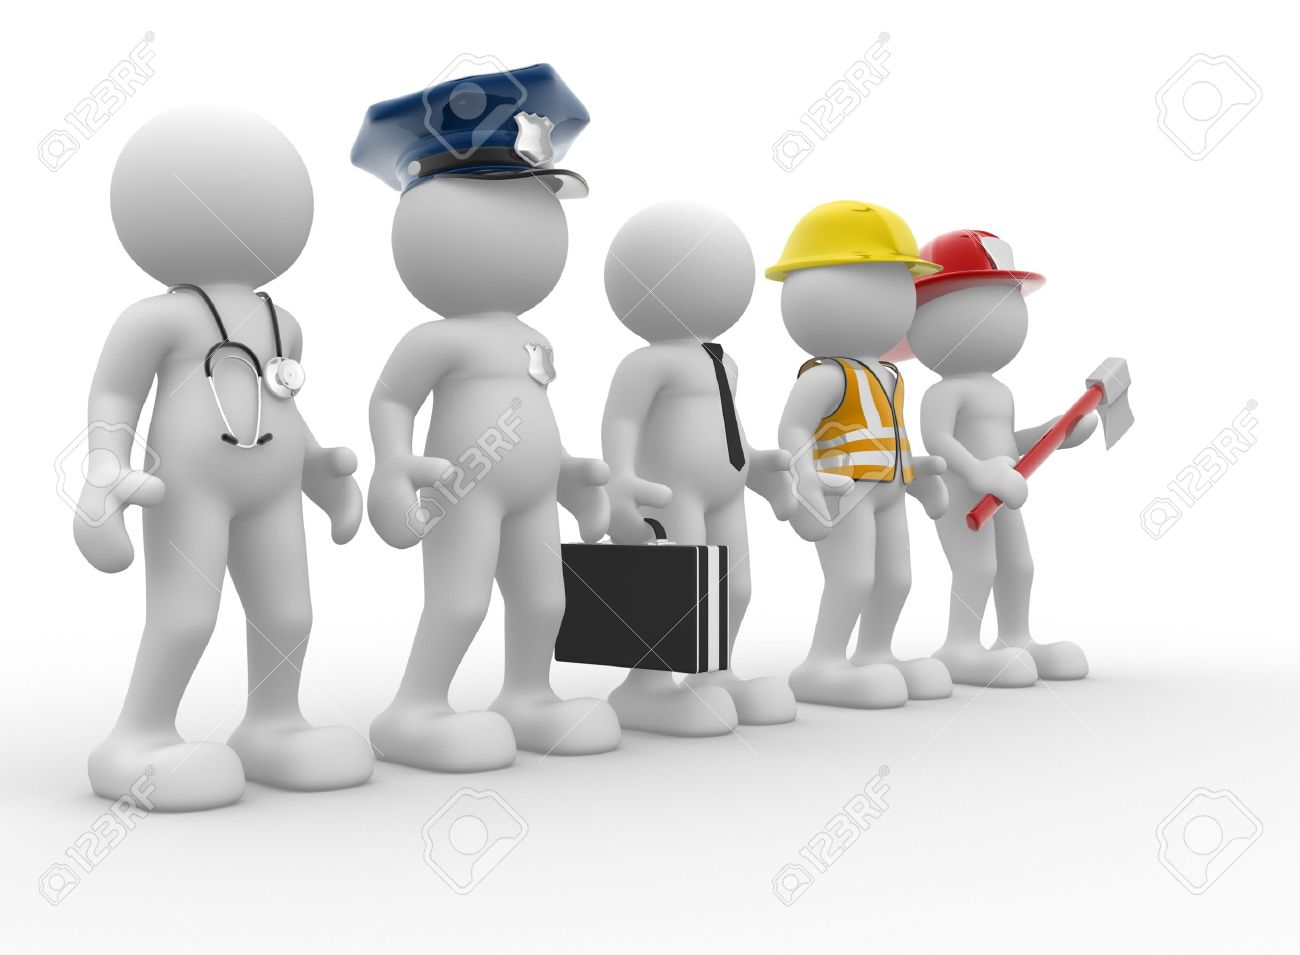 3d people - human character, person with different professions. Doctor, policeman, businessman, engineer, fireman. 3d render Stock Photo - 14802060